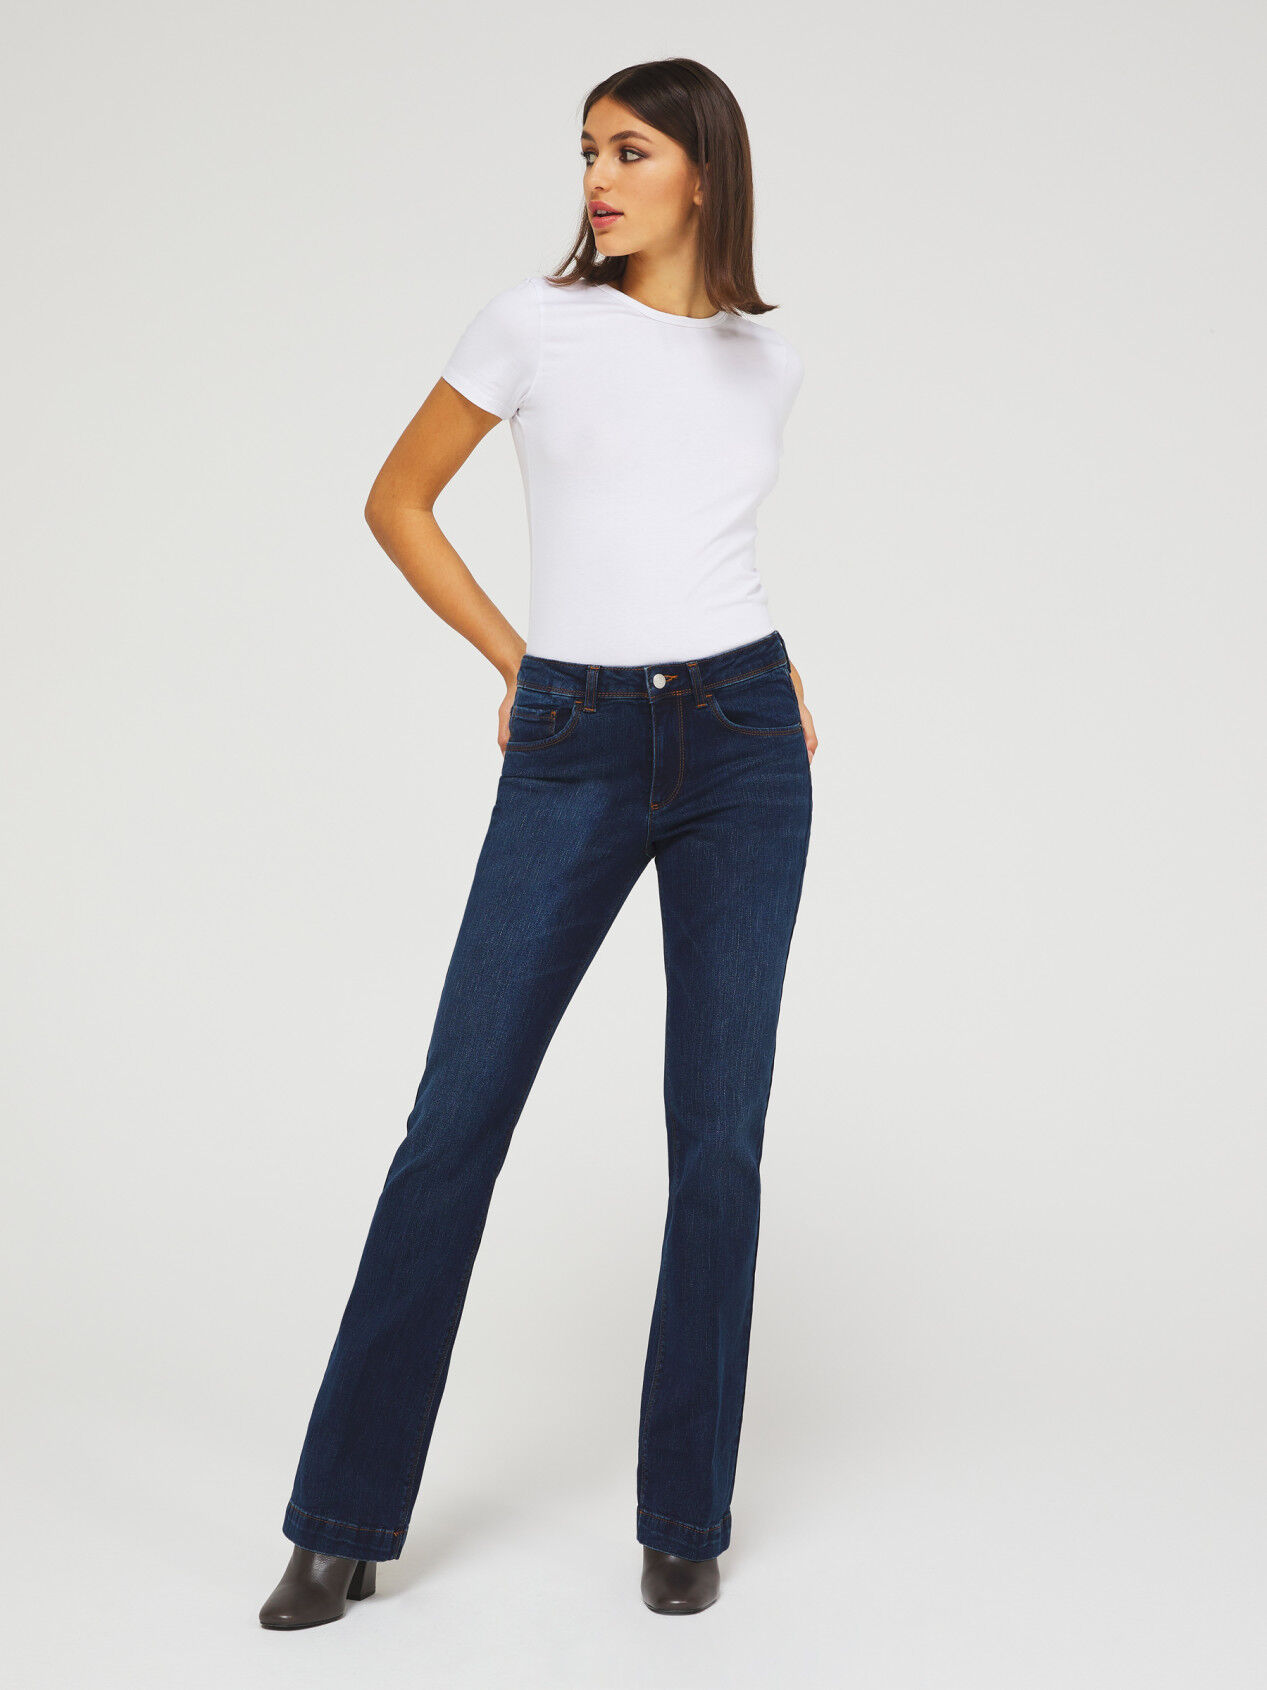 Jeans Flare & Boot Cut Femme